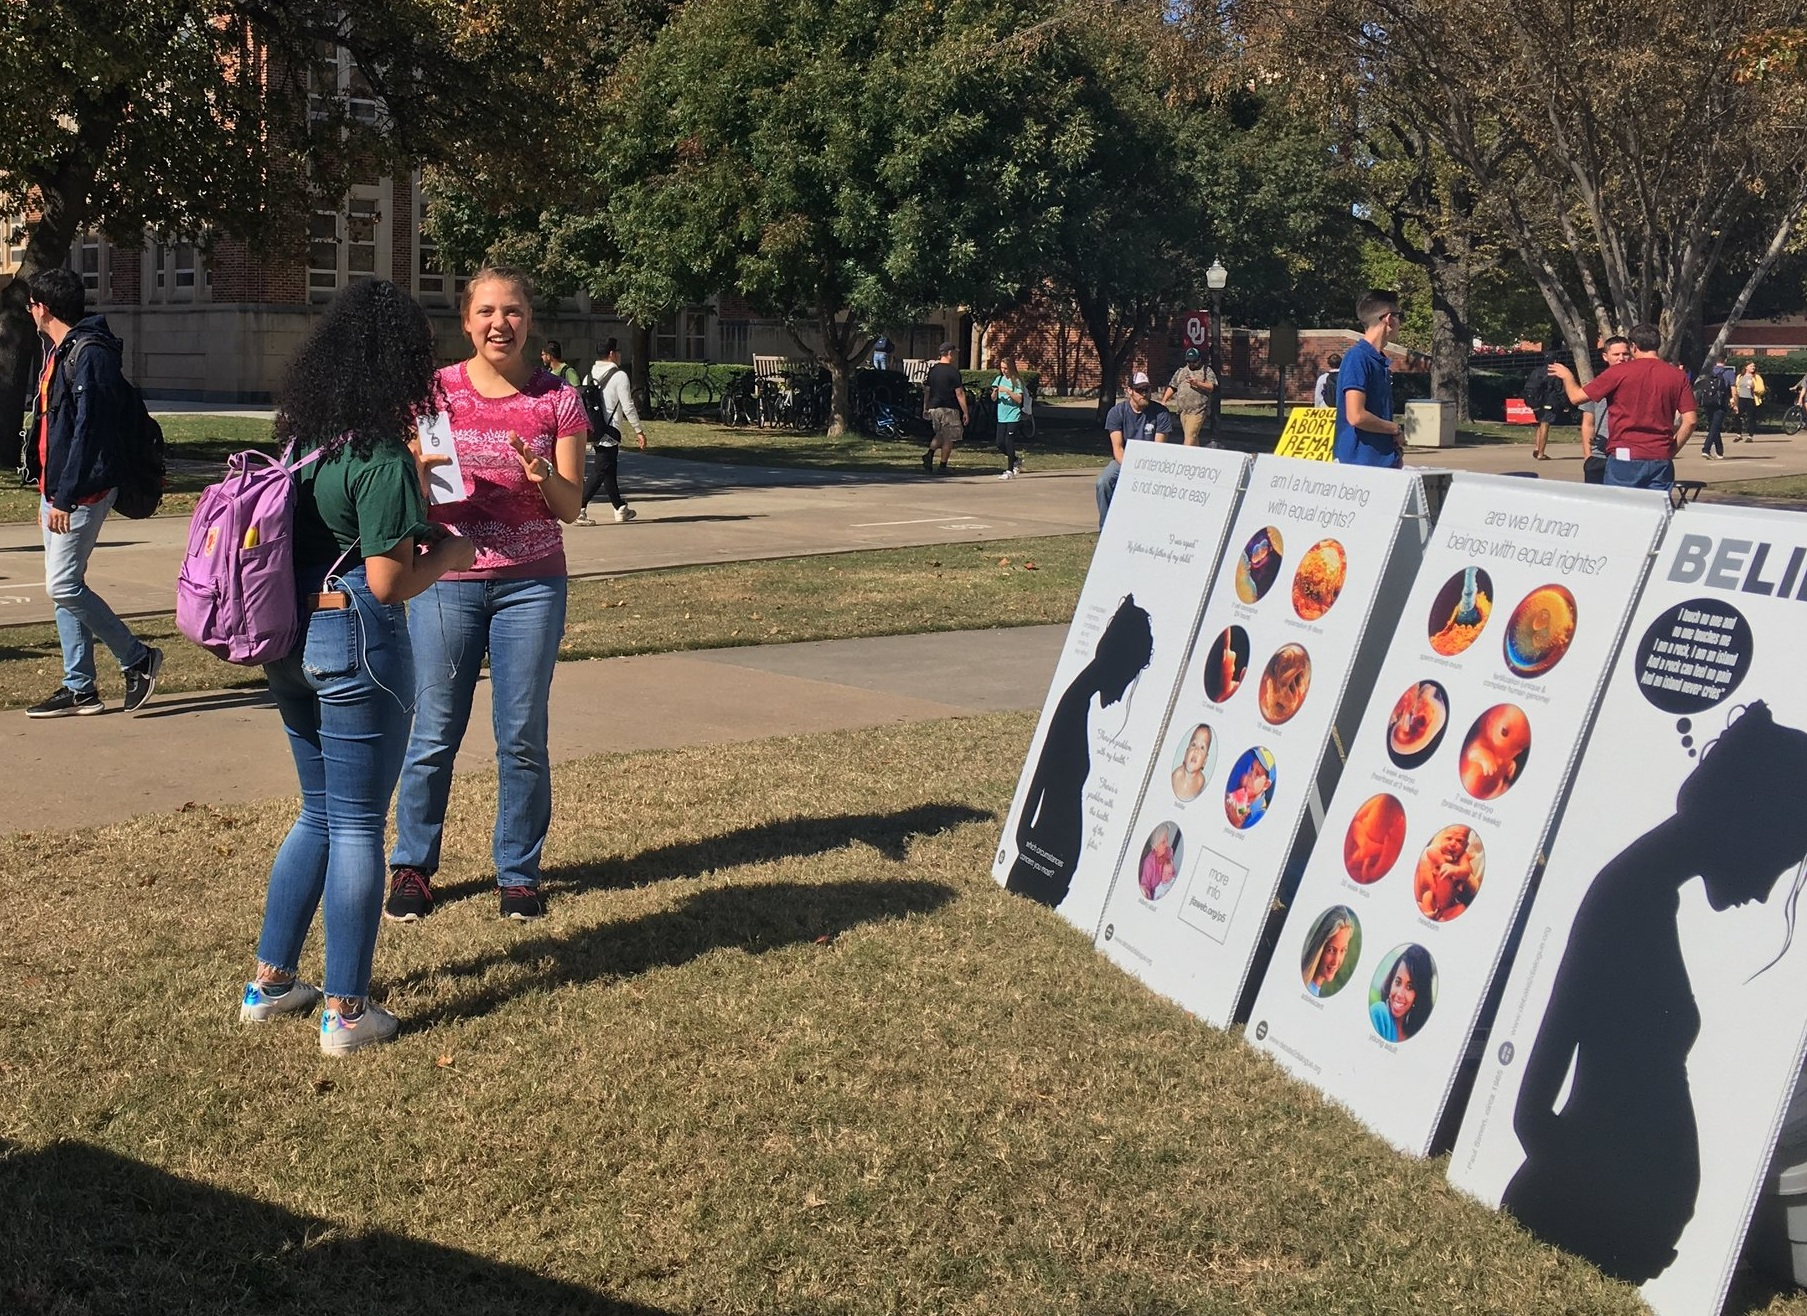 Kaitlyn Donihue (pink) creates conversation at OU. Note how the juxtaposed imagery of mother and child makes it clearer that we care about both.